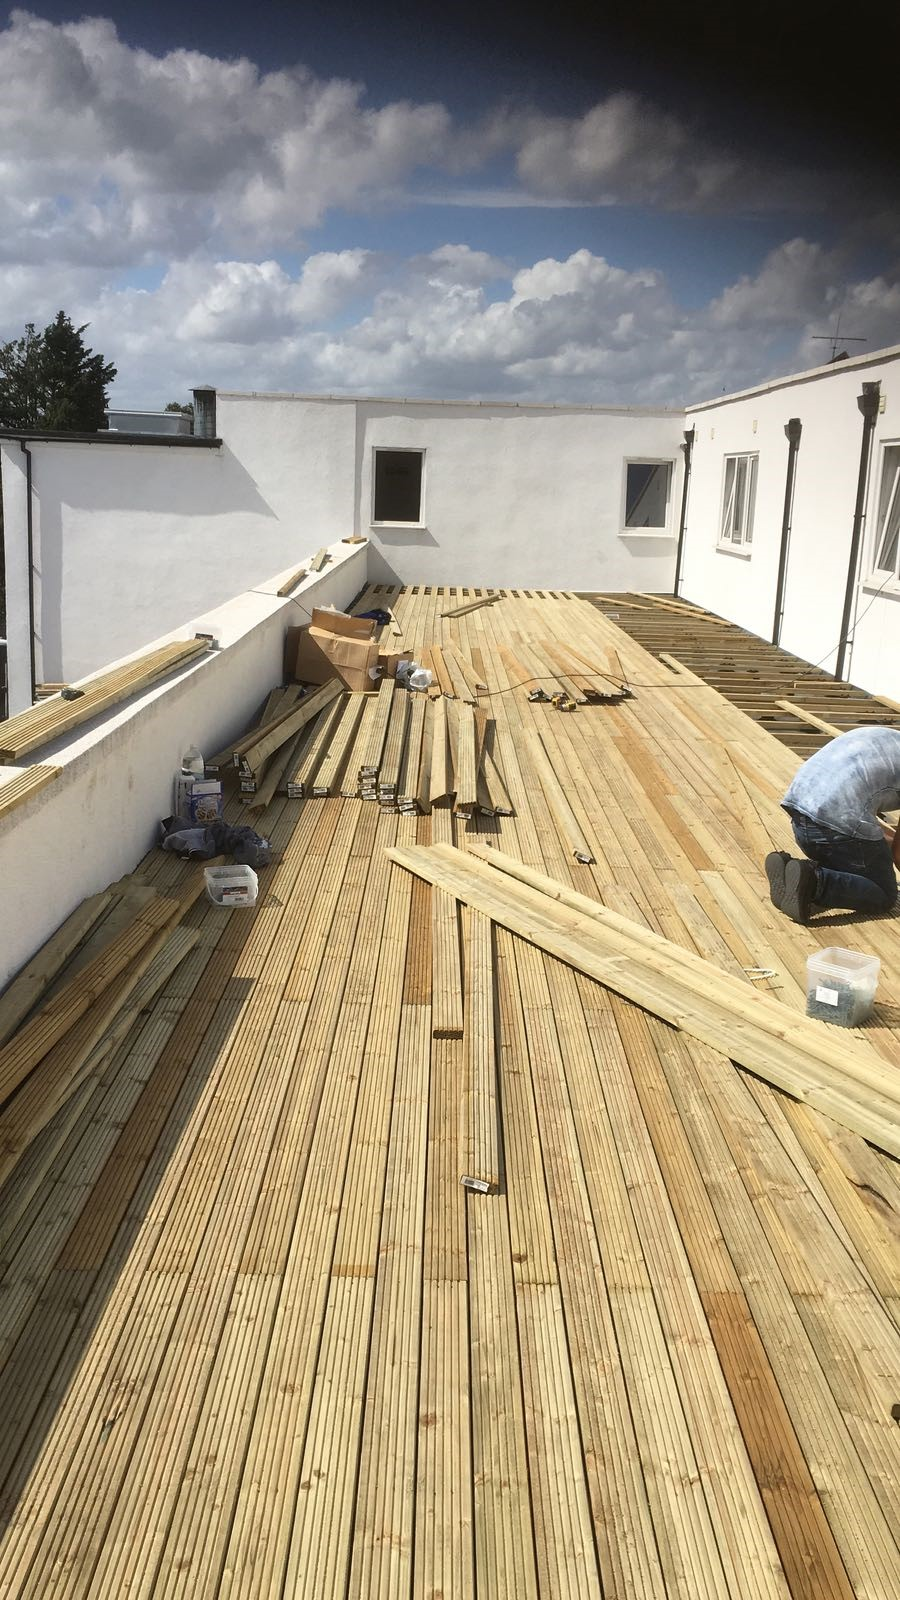 An image of a decking installation utilising Wallbarn's timber support pedestals in progress